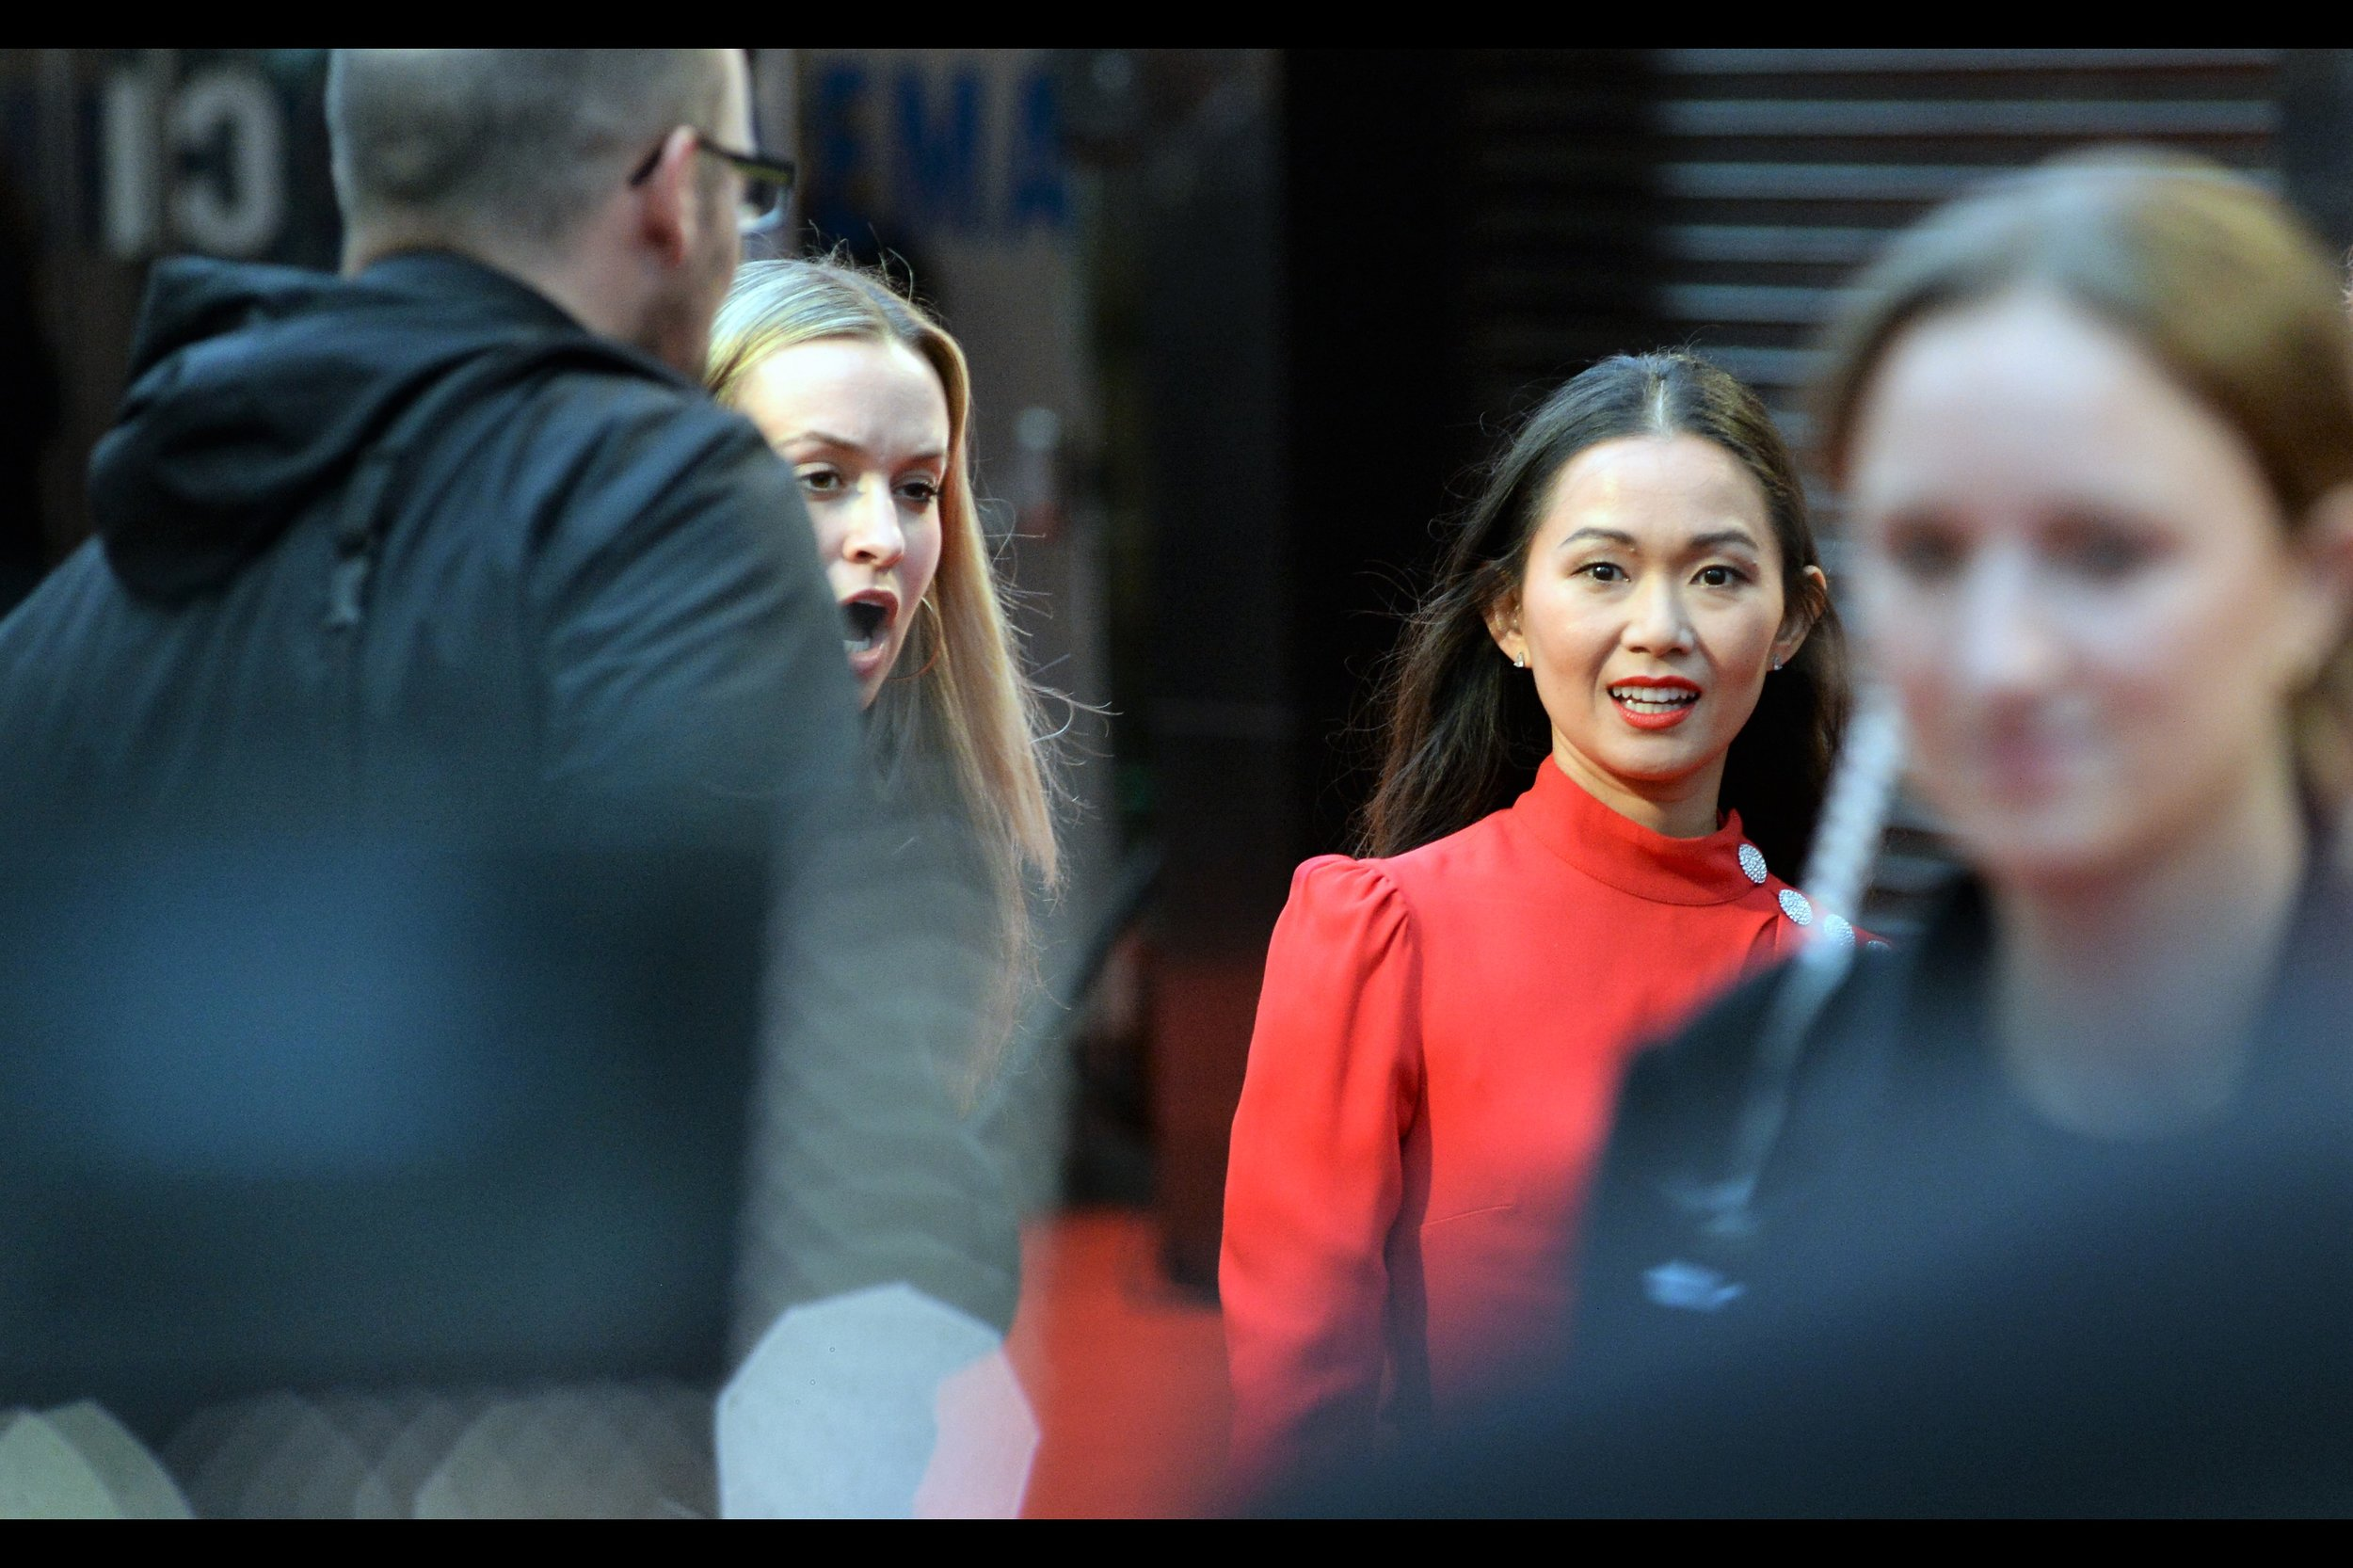 This is Hong Chau. I can not see her P.A., but I'm relieved it's not the giant balding security guard who hovered over her when she got out of the car.